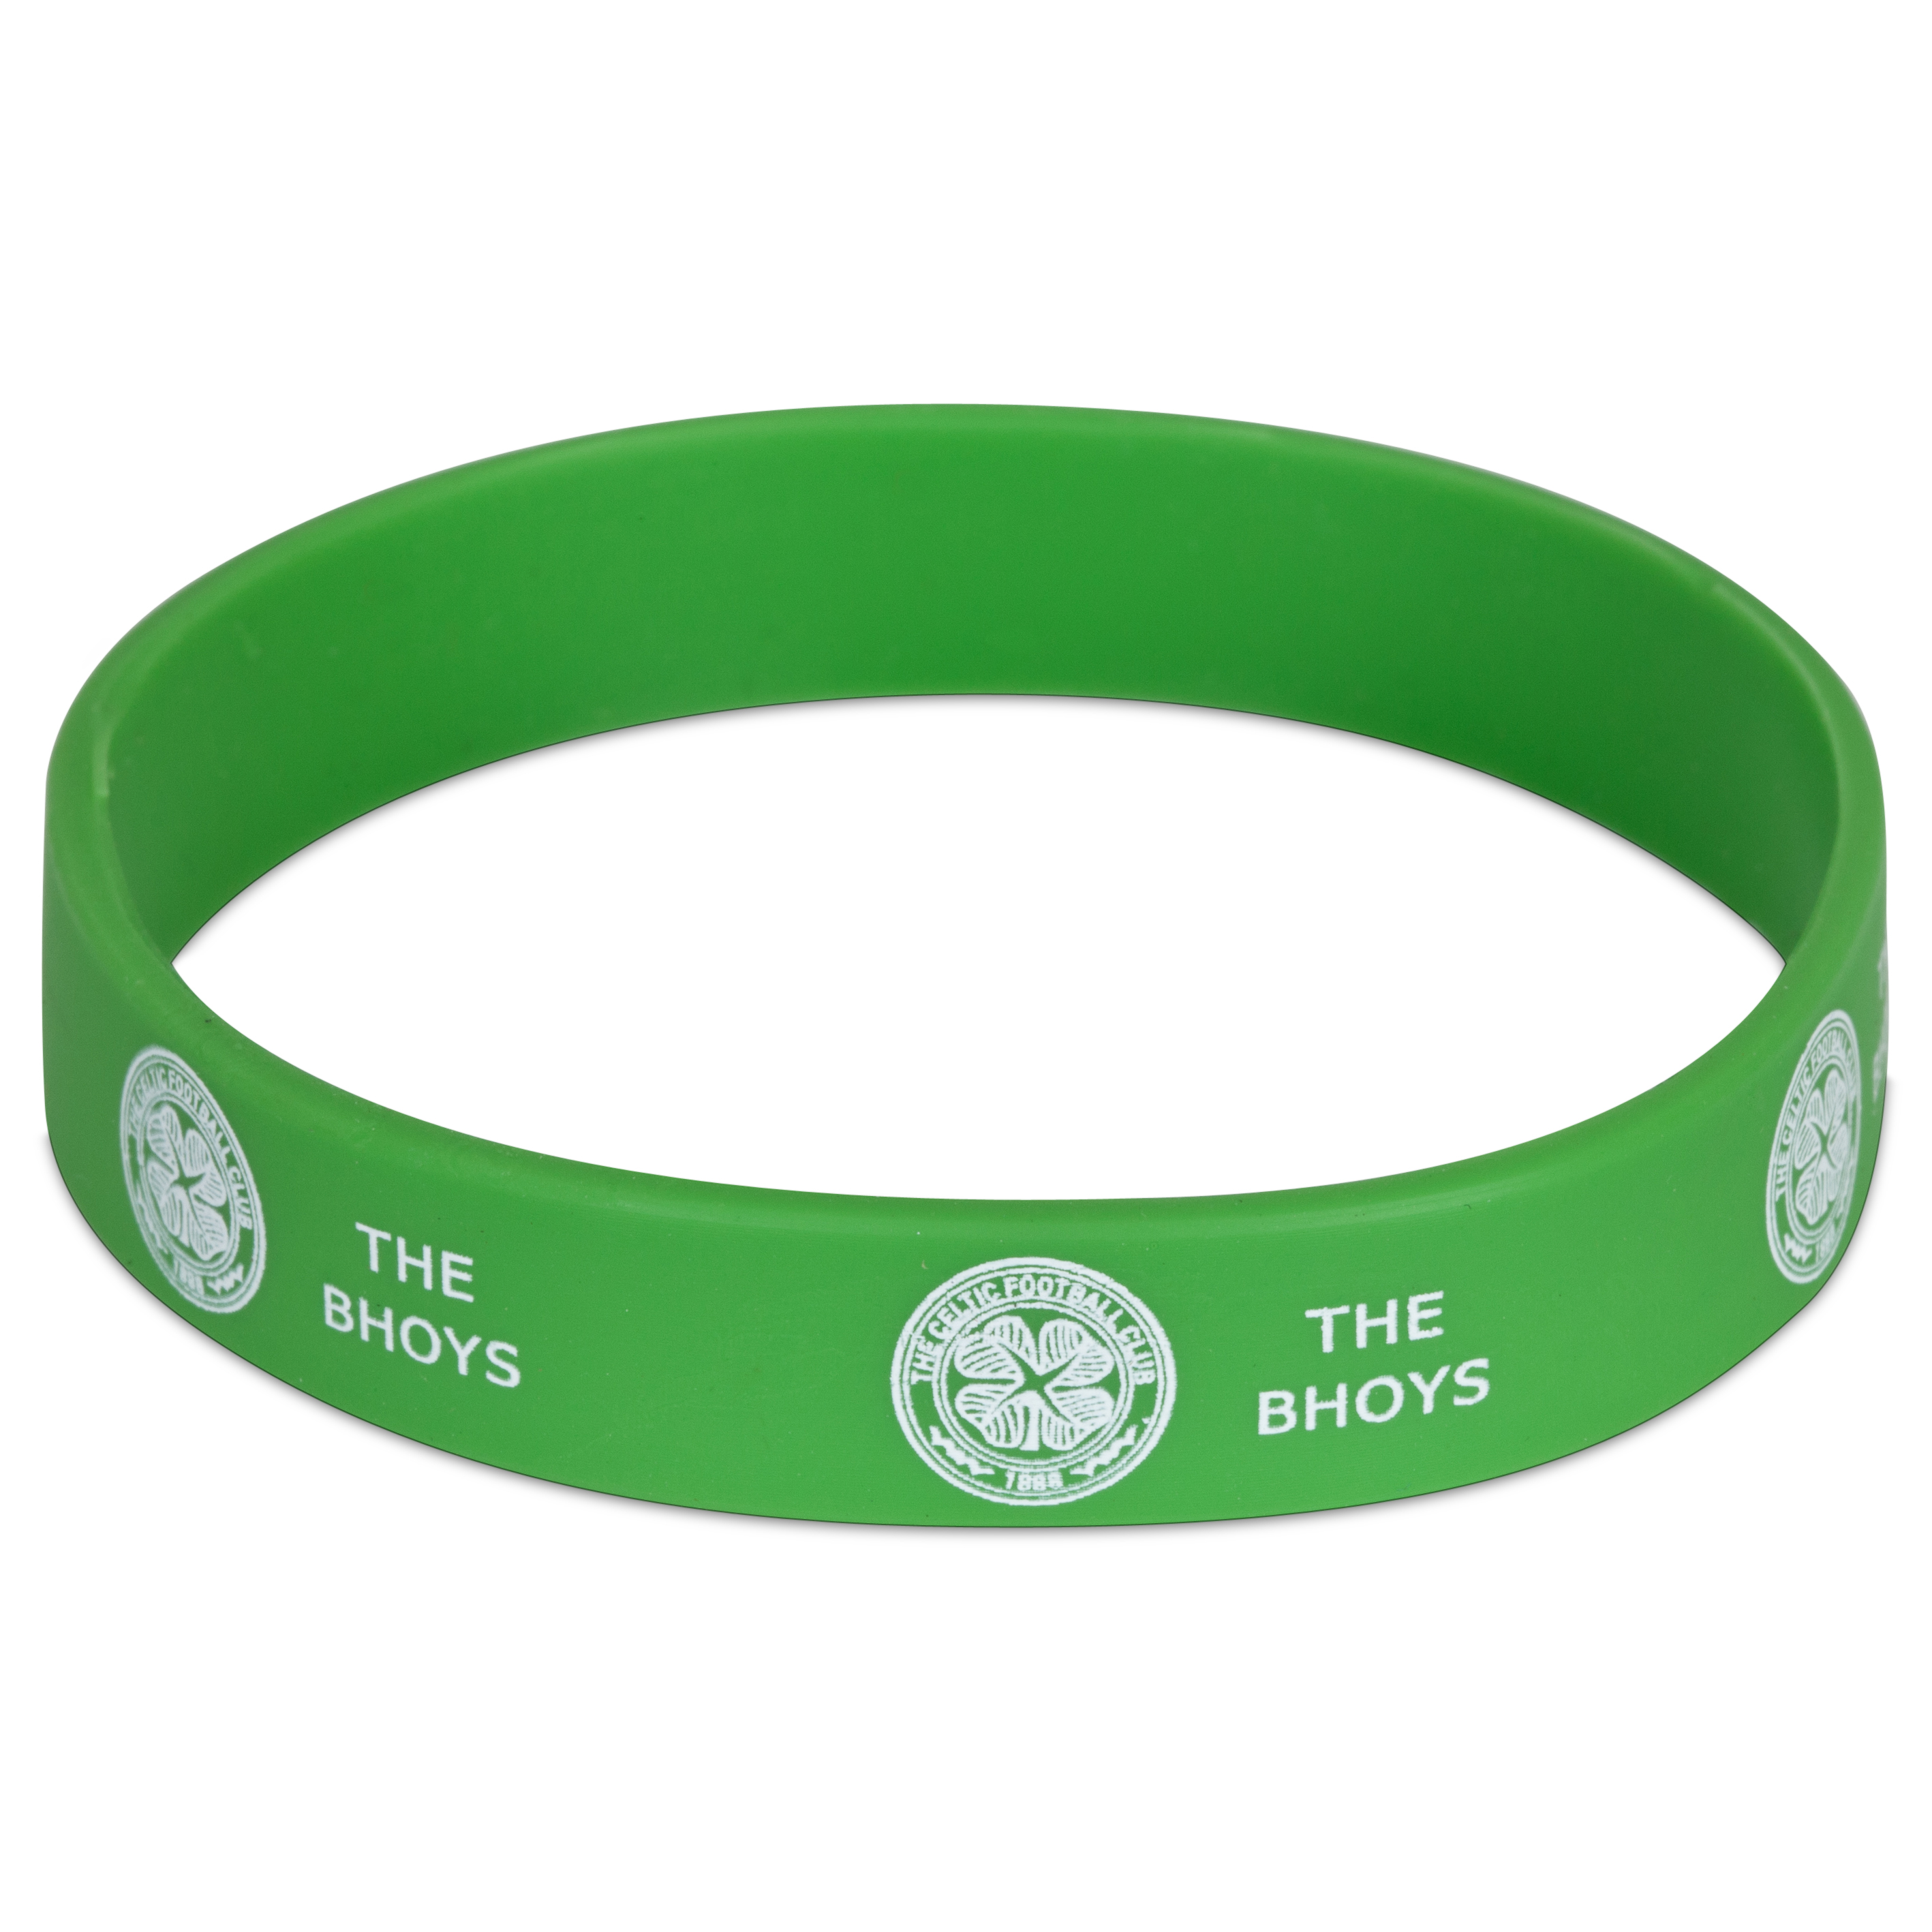 Image of Celtic Rubber Wristband - 12mm Width, White